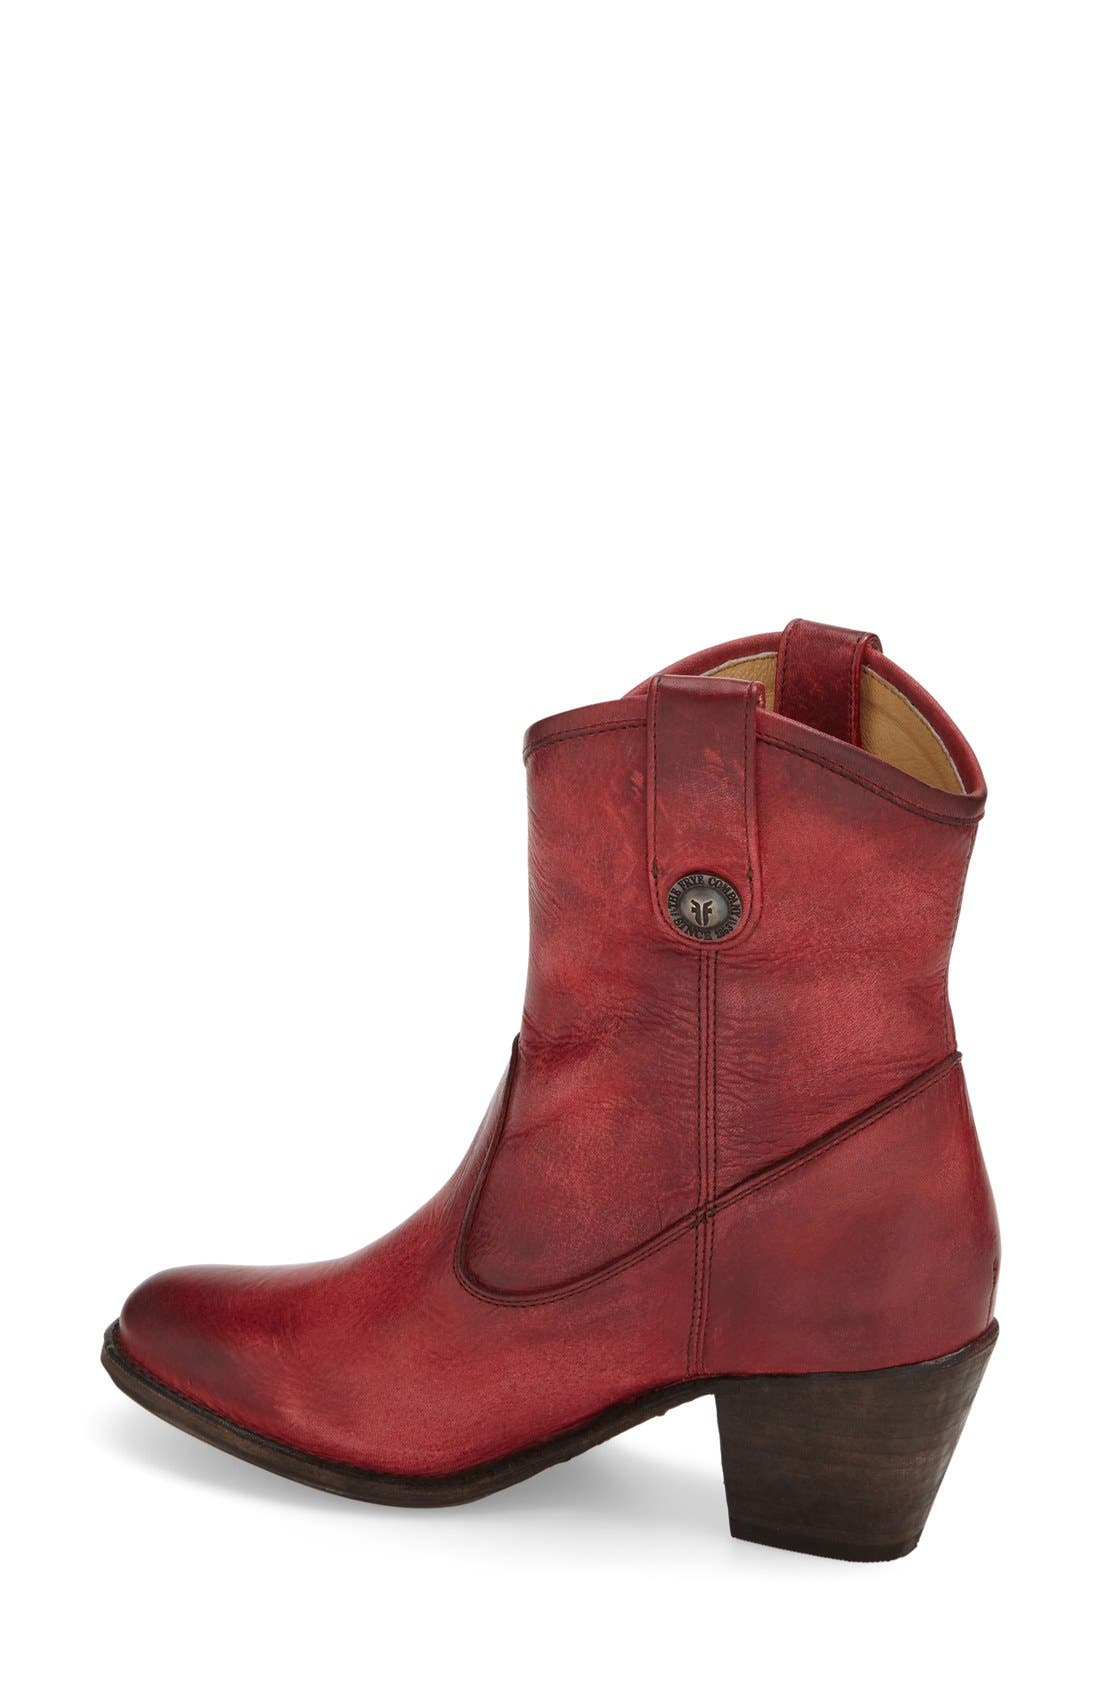 'Jackie Button' Short Bootie,                             Alternate thumbnail 2, color,                             930